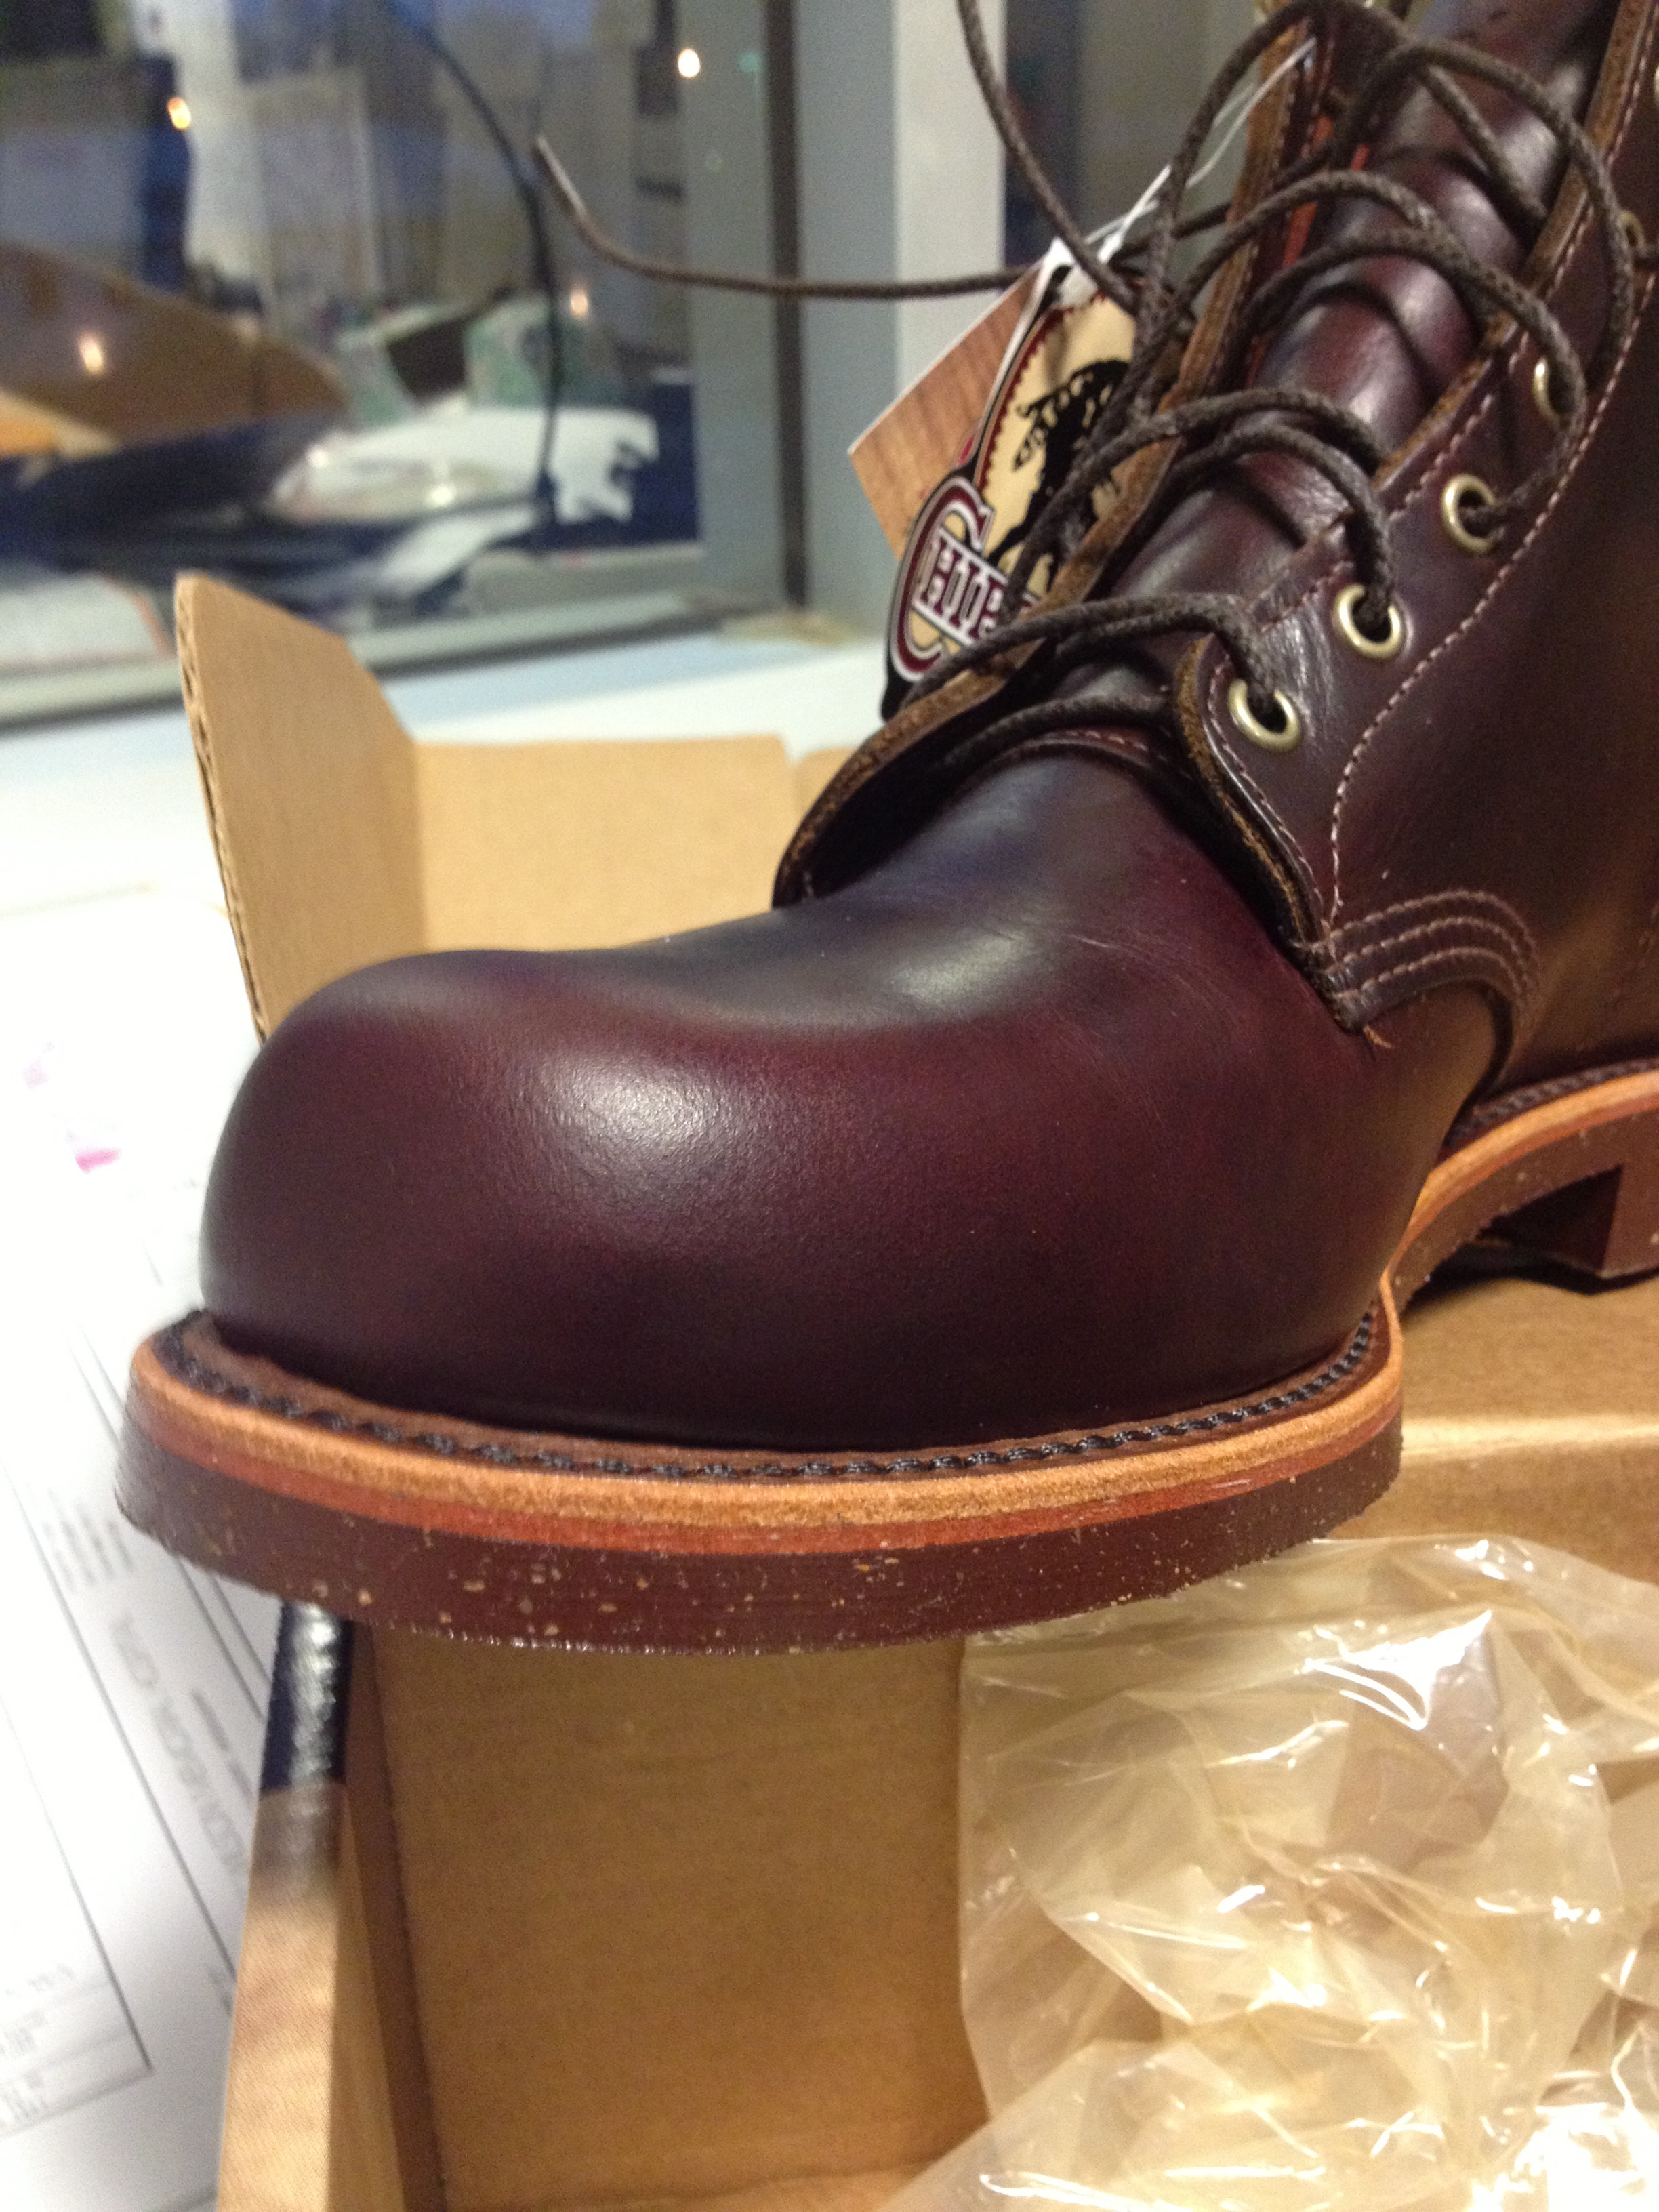 d92cafb0311 Calling all LLBean Katahdin Iron Works Boots owners | Page 78 ...